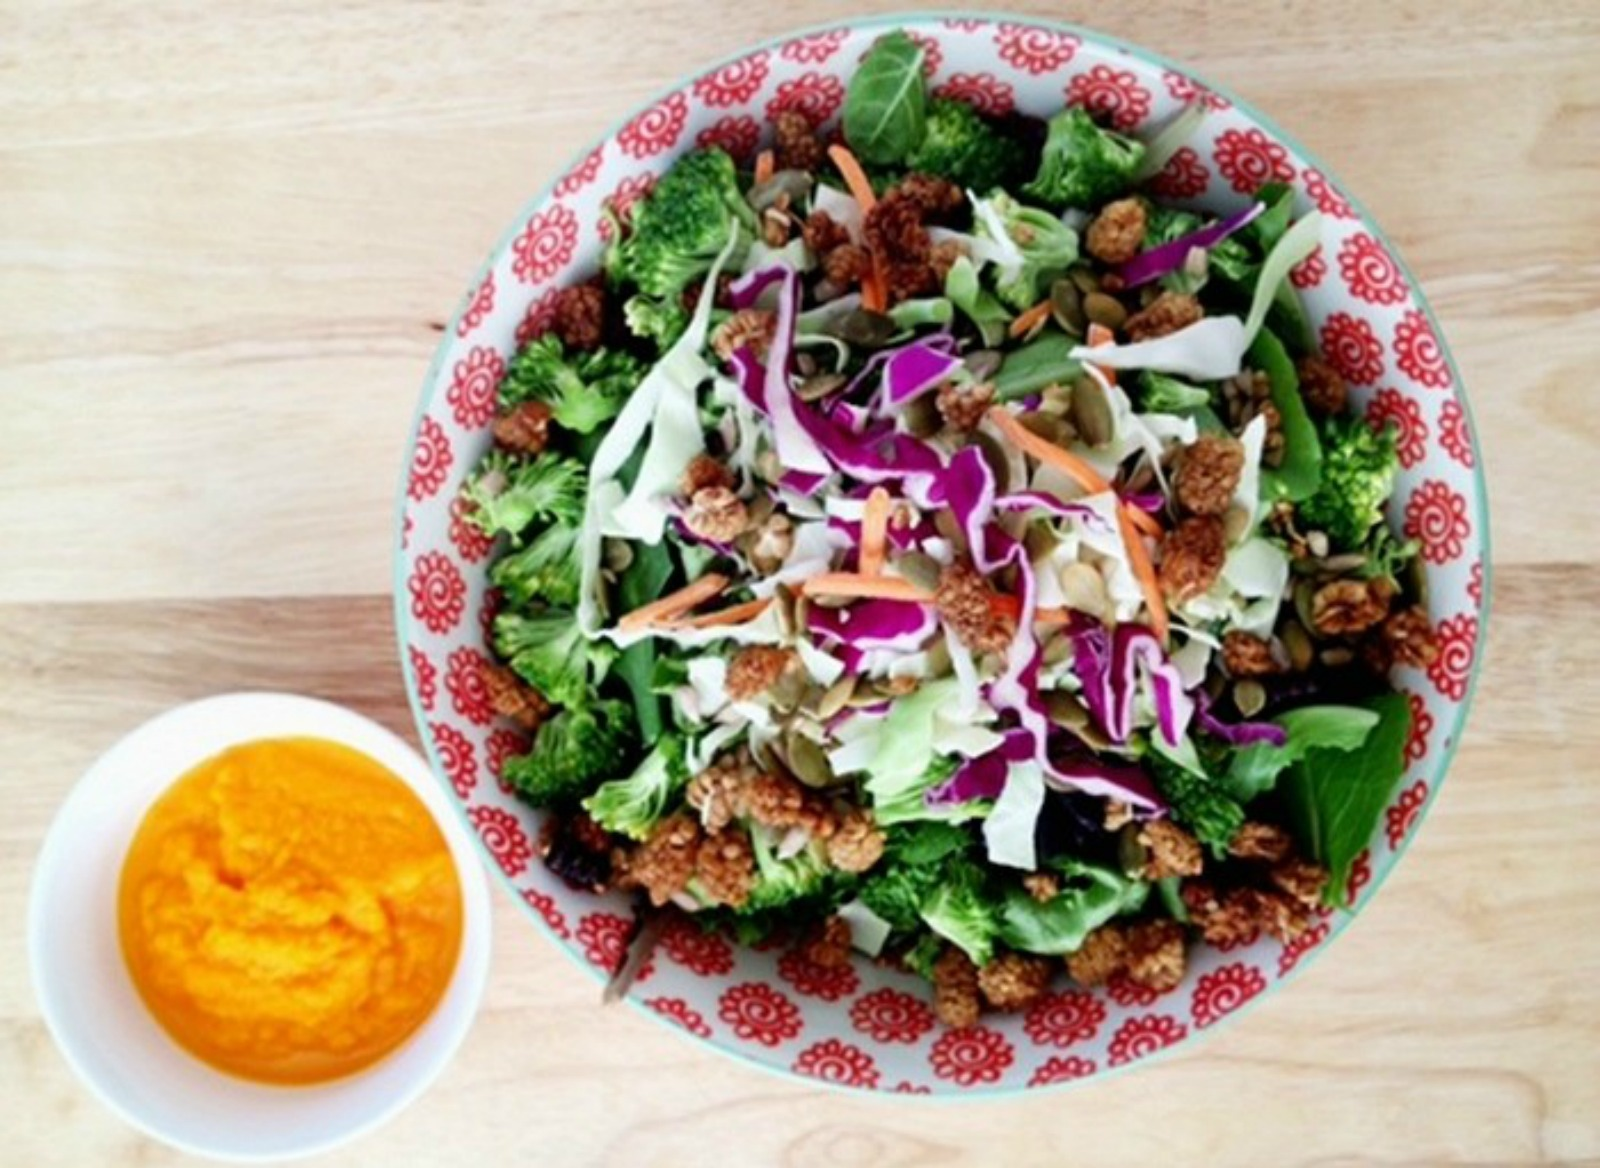 How to Use Nuts and Seeds to Make Creamy Salad Dressings